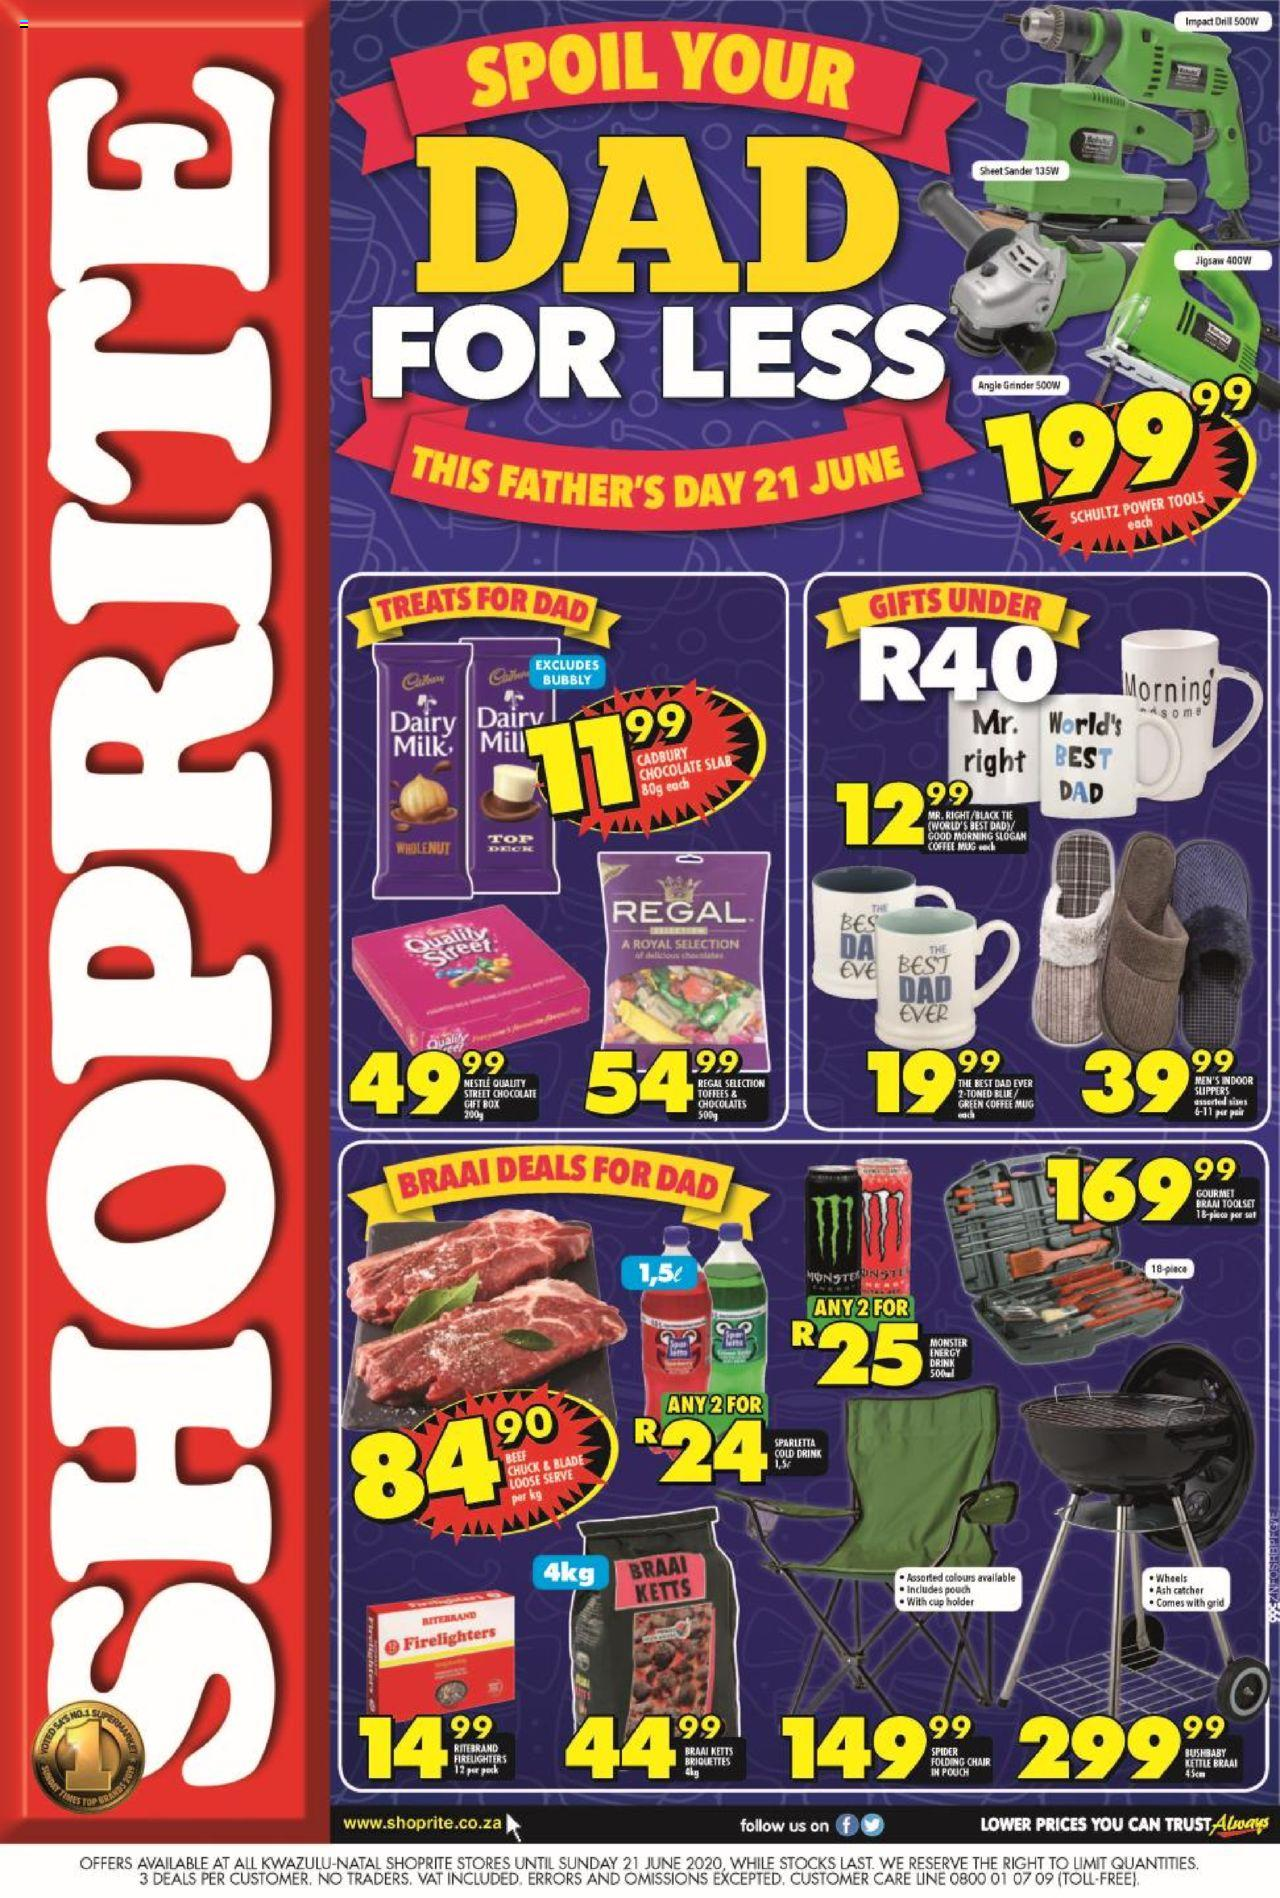 shoprite specials fathers day promotion 16 june 2020